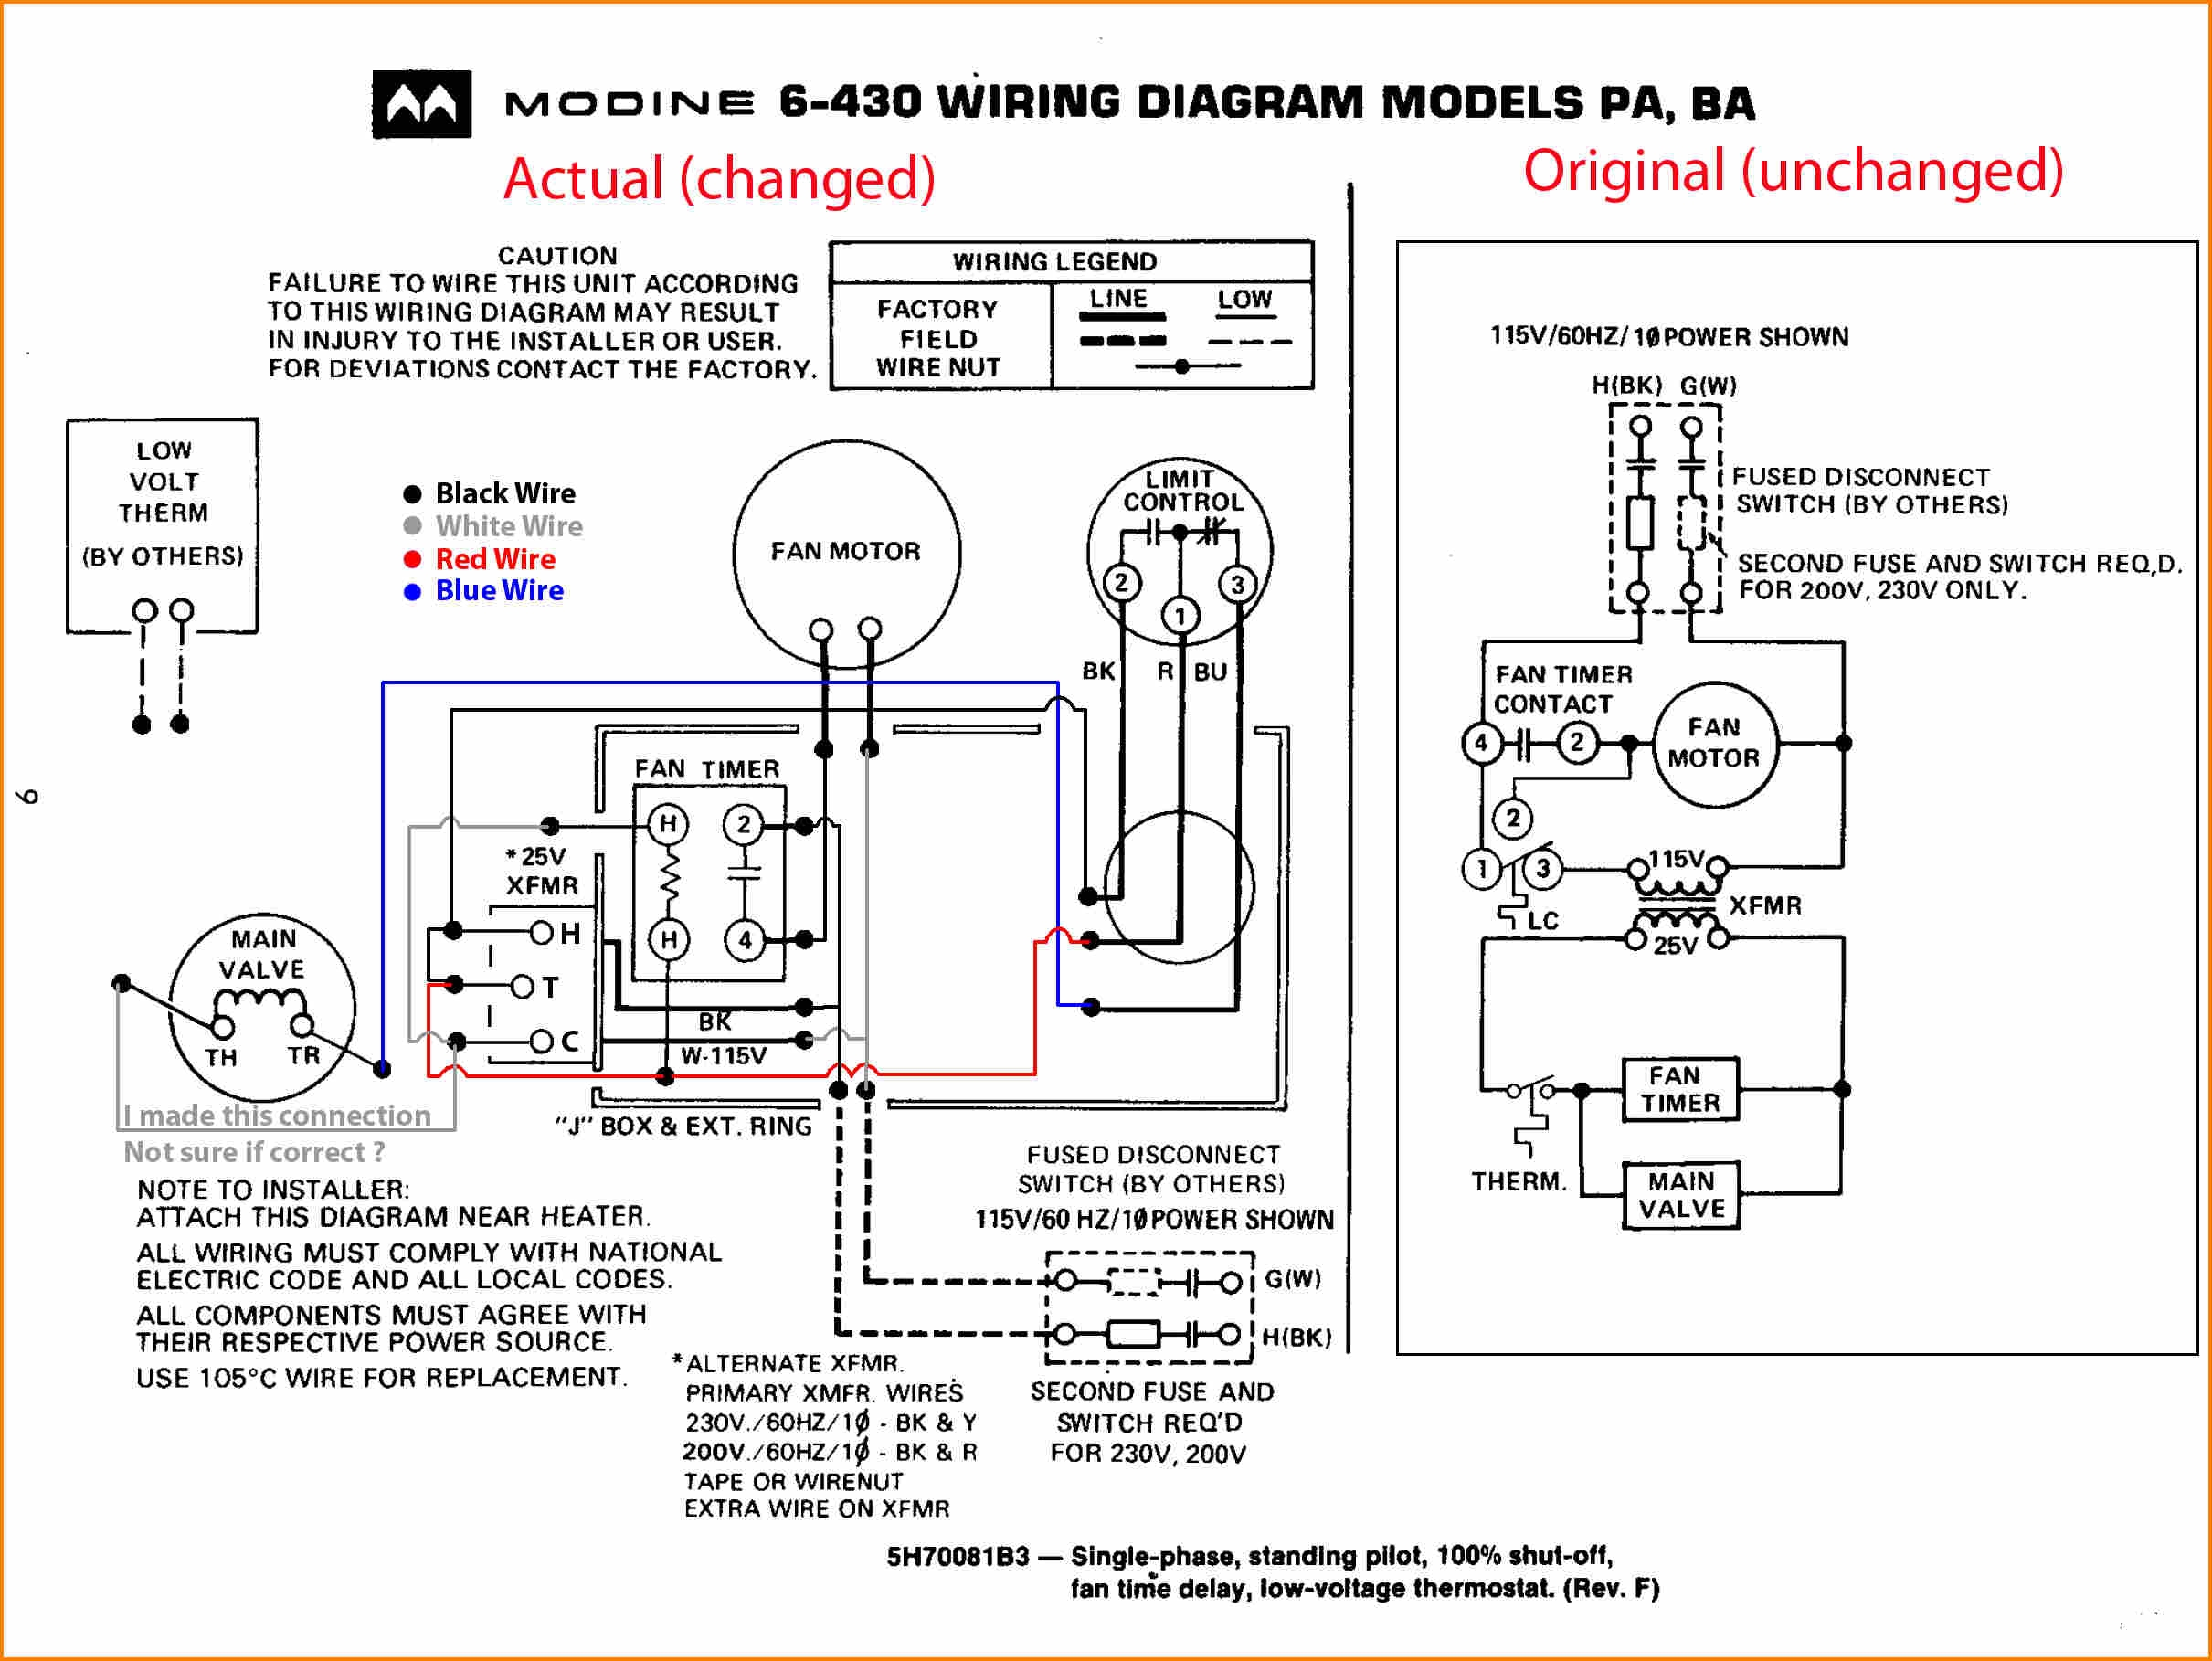 Furnace Blower Wiring Diagram Heat Strip | Online Wiring Diagram on goodman capacitor wiring diagram, goodman air conditioner schematic diagram, goodman manuals wiring diagrams, goodman indoor unit wire diagram, goodman air handler wiring diagrams, goodman air handler parts diagram, goodman a c wiring diagram, goodman control board wiring diagram,